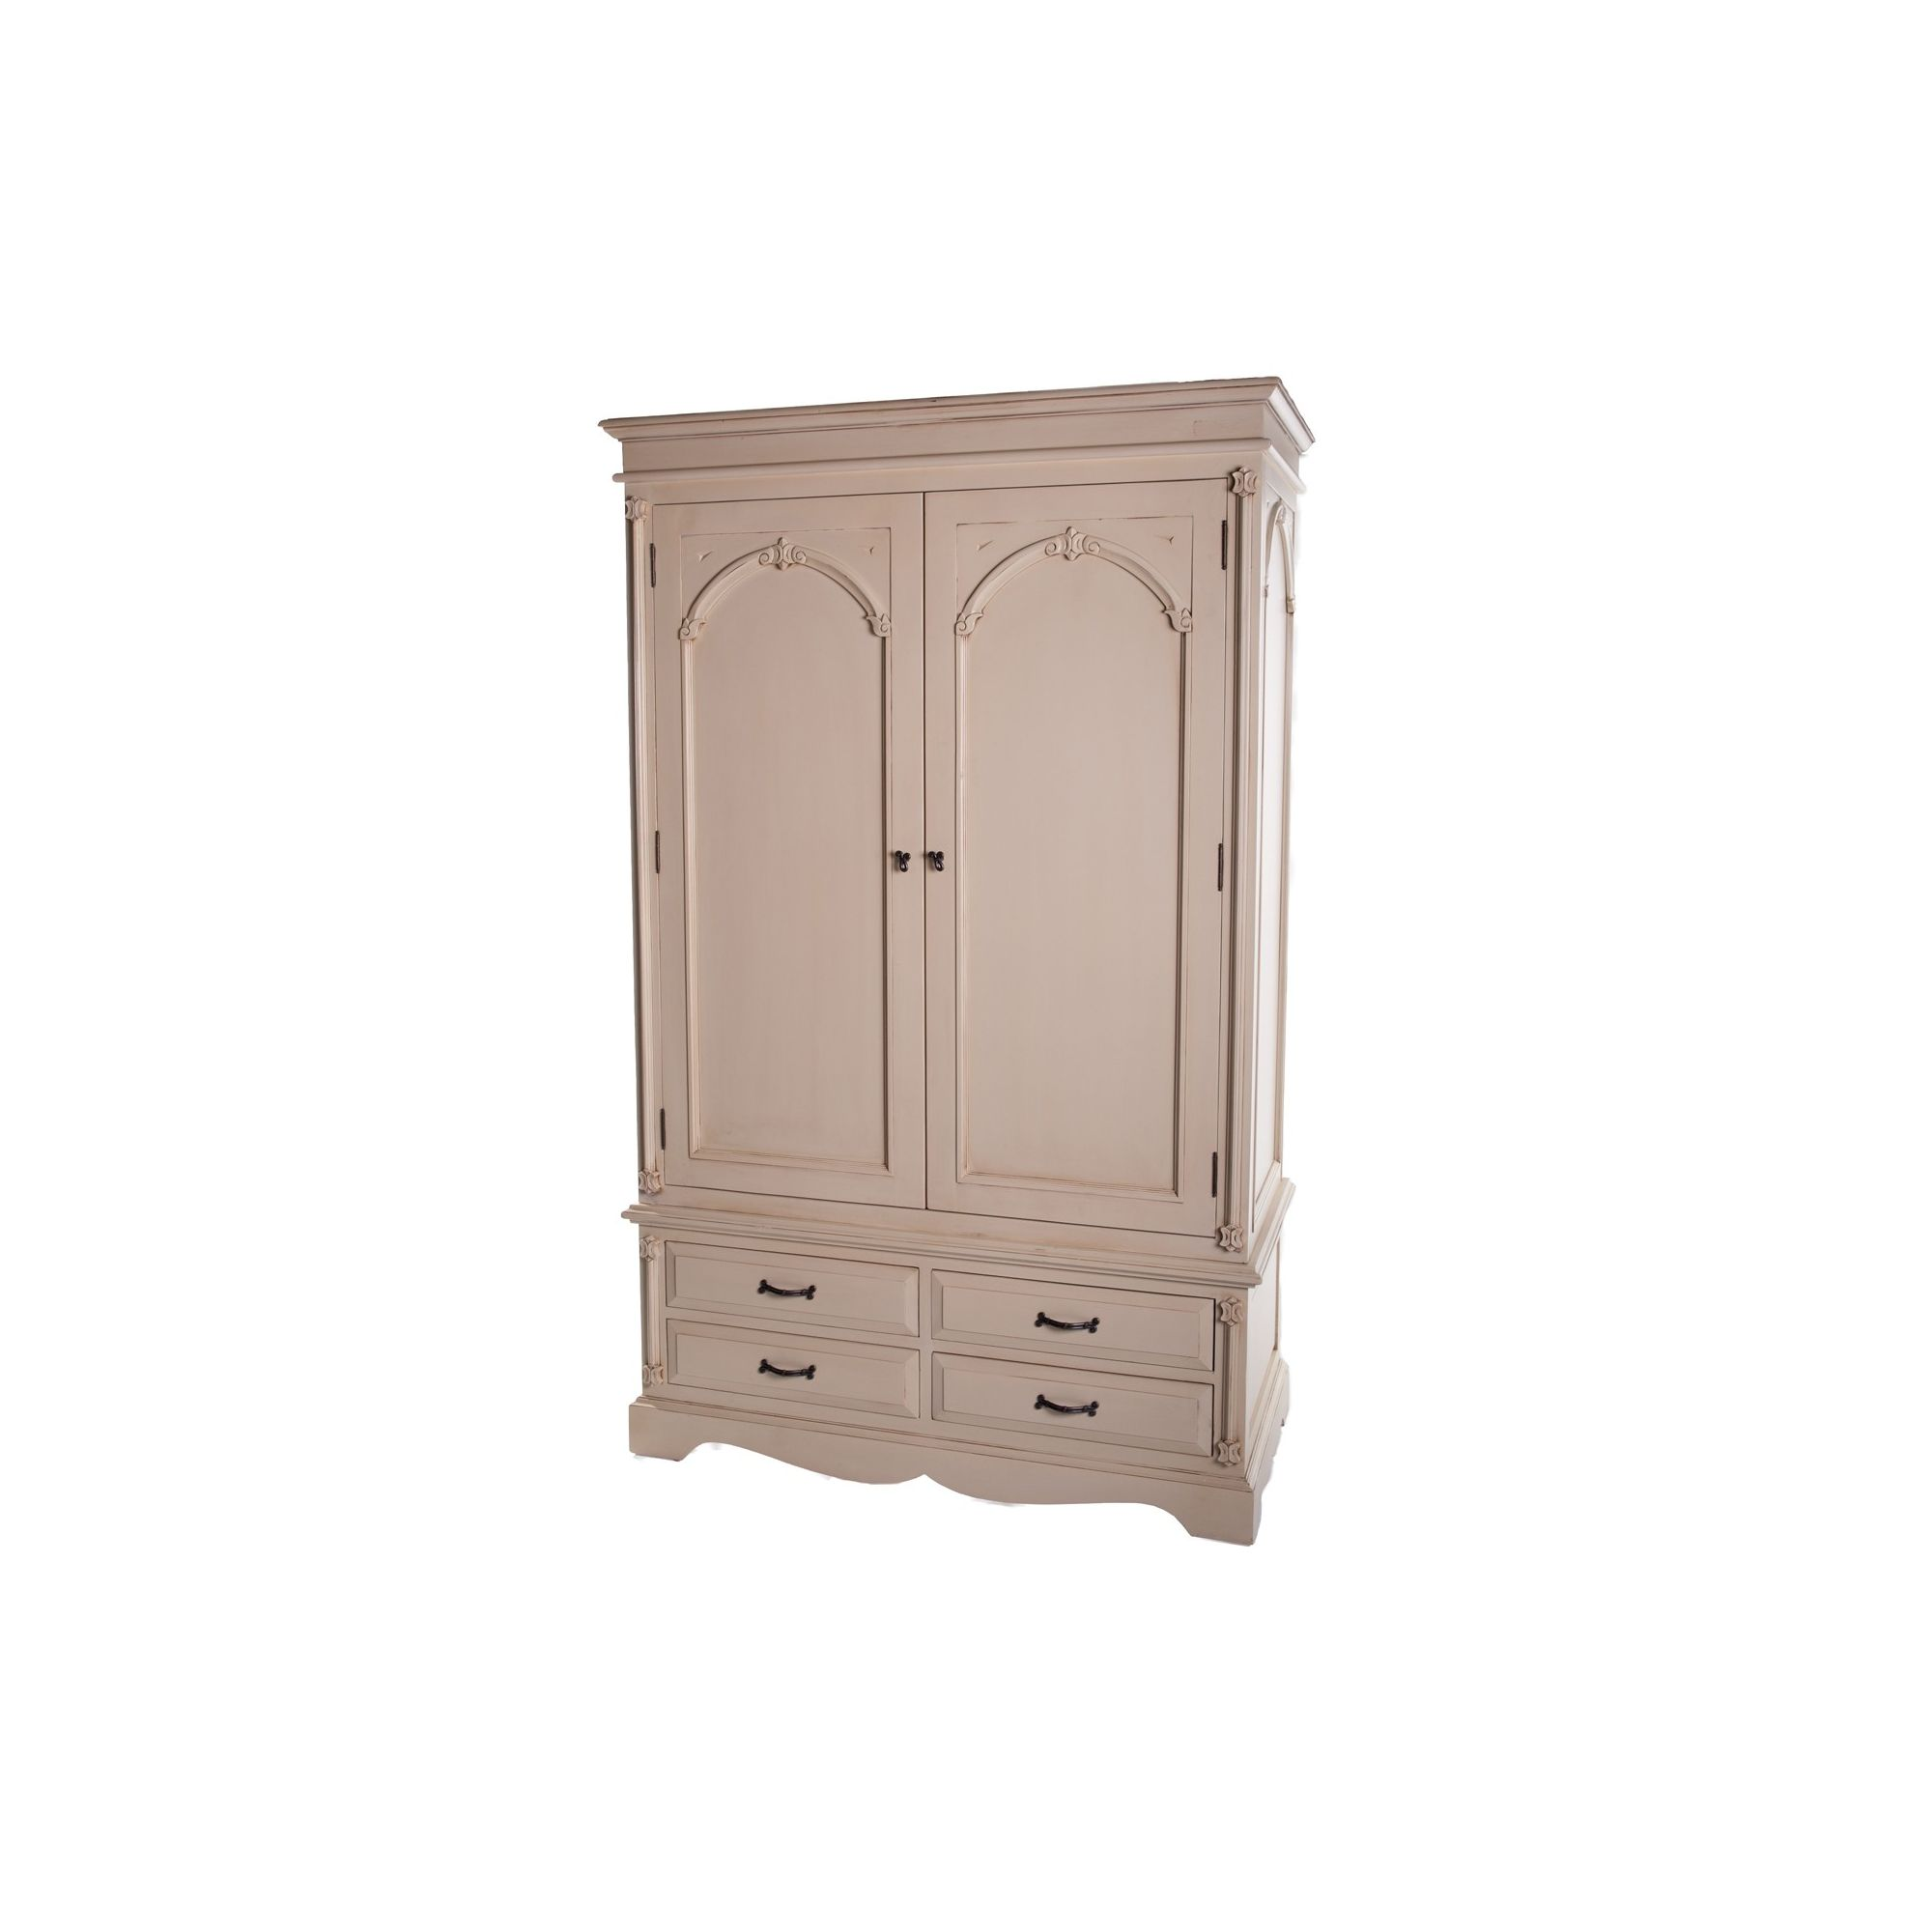 Thorndon Beverley Bedroom Double Wardrobe in Distressed Ivory at Tesco Direct